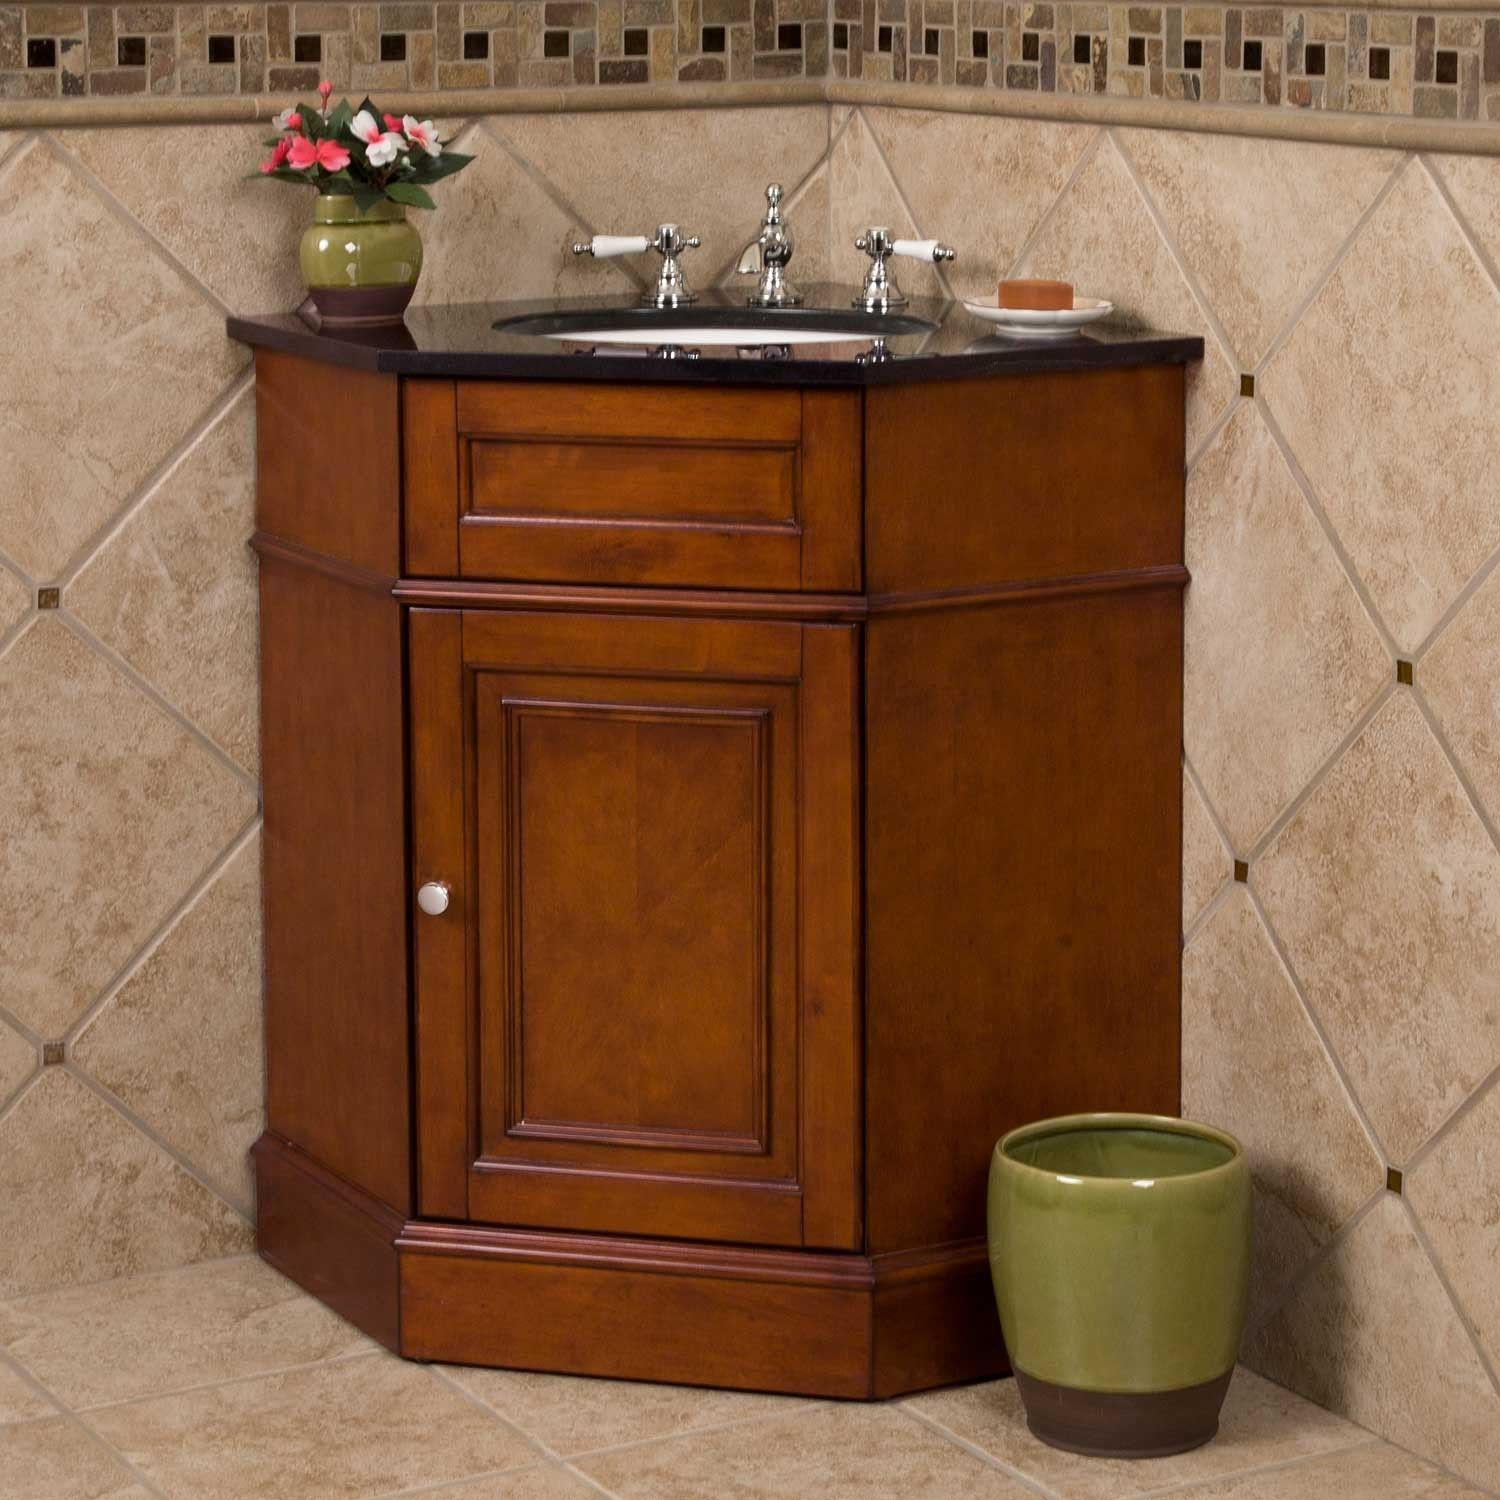 36 Bridgemill Corner Vanity For Undermount Sink Bathroom Bathroom Vanity Vintage Bathroom Vanities Corner Vanity